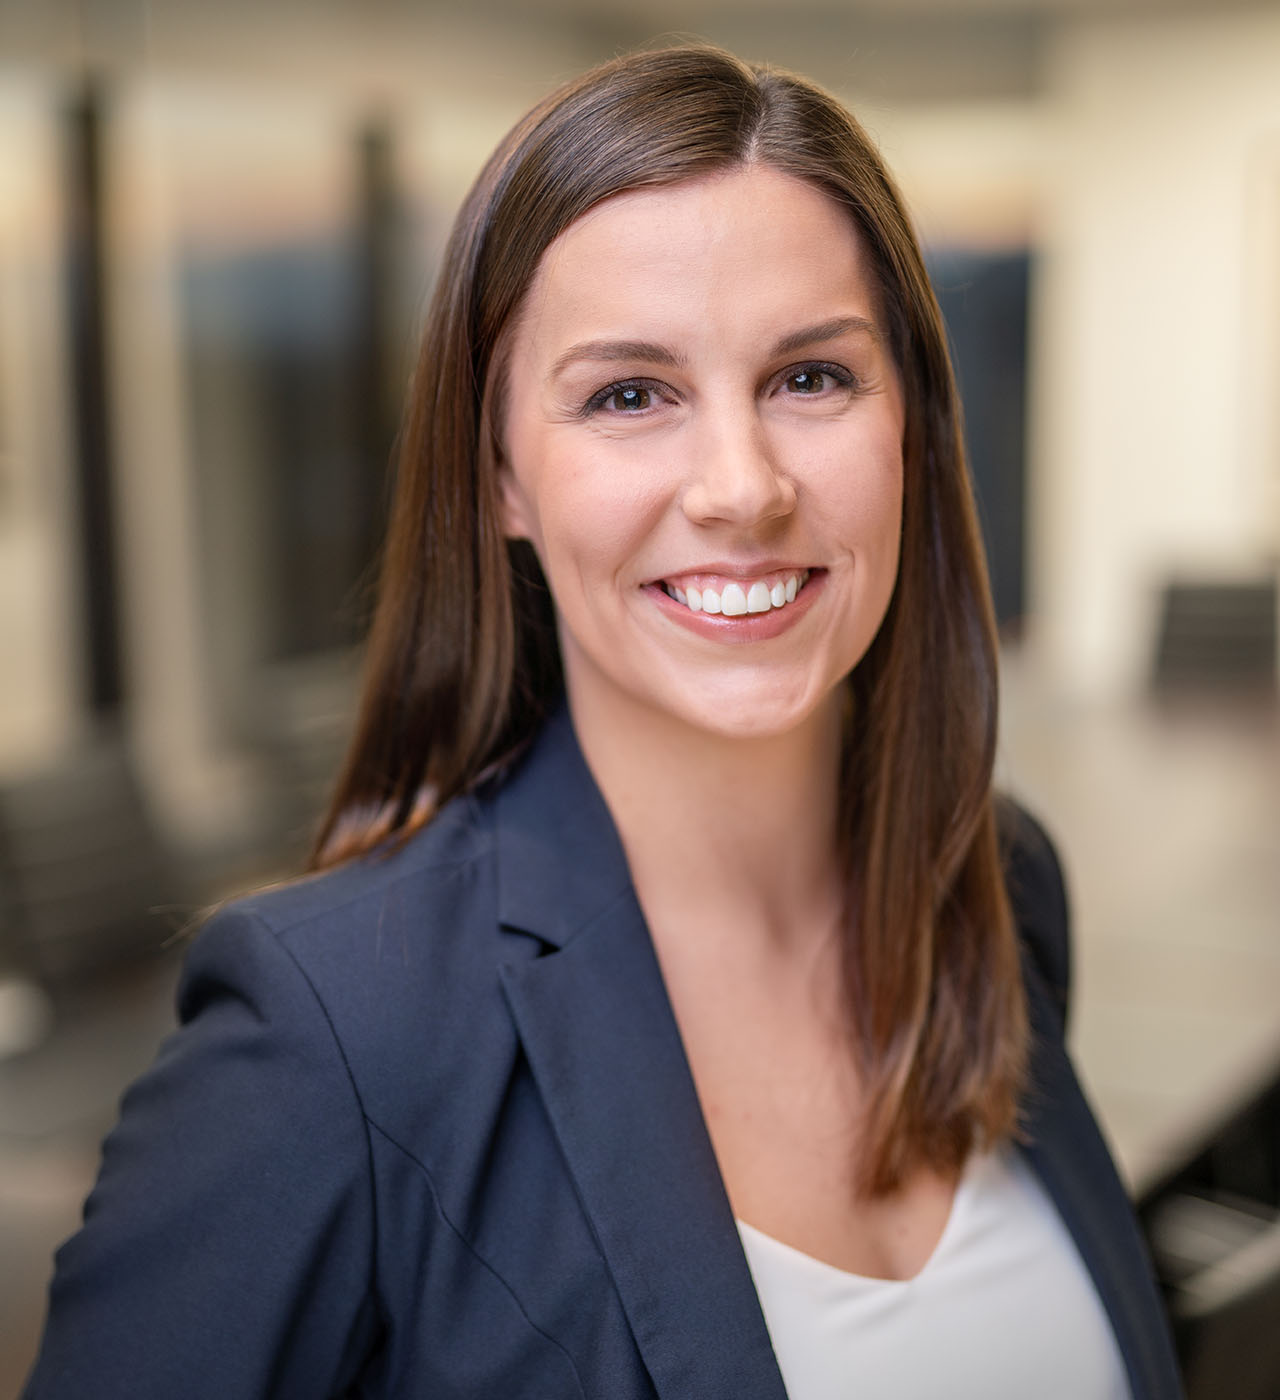 Shivaun S. Eberle is a Student-at-Law at Kanuka Thuringer LLP